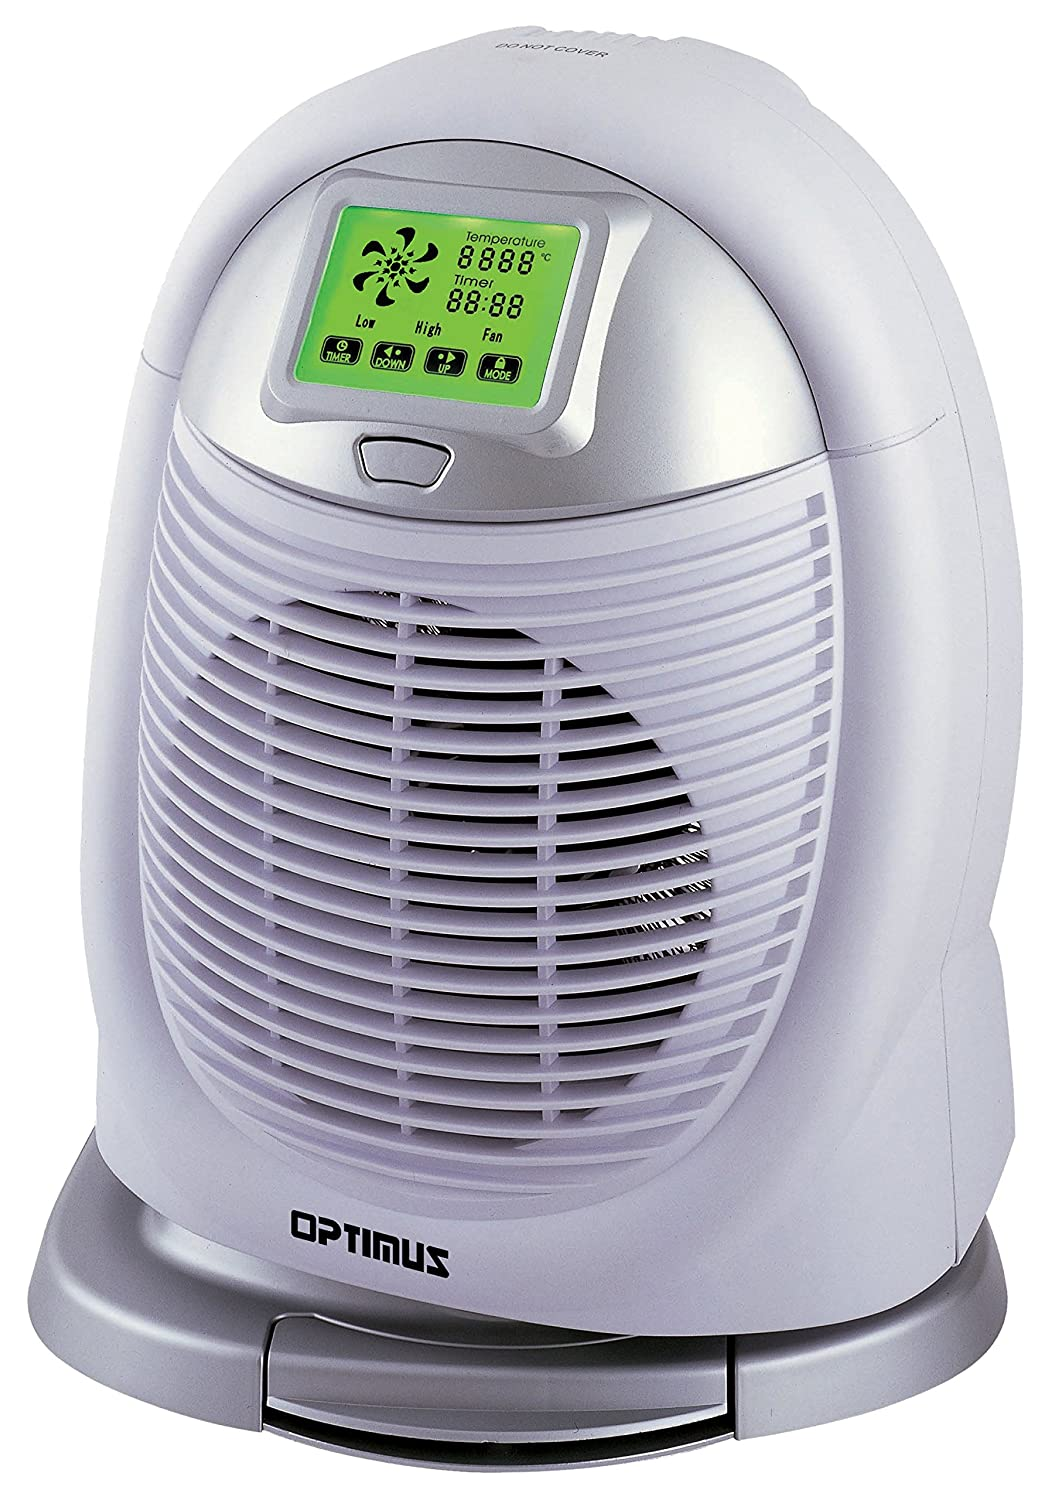 Exceptional Amazon.com: Optimus H 1410 Portable Digital Oscillating Fan Heater With  Thermostat And Touch Screen Control: Home U0026 Kitchen